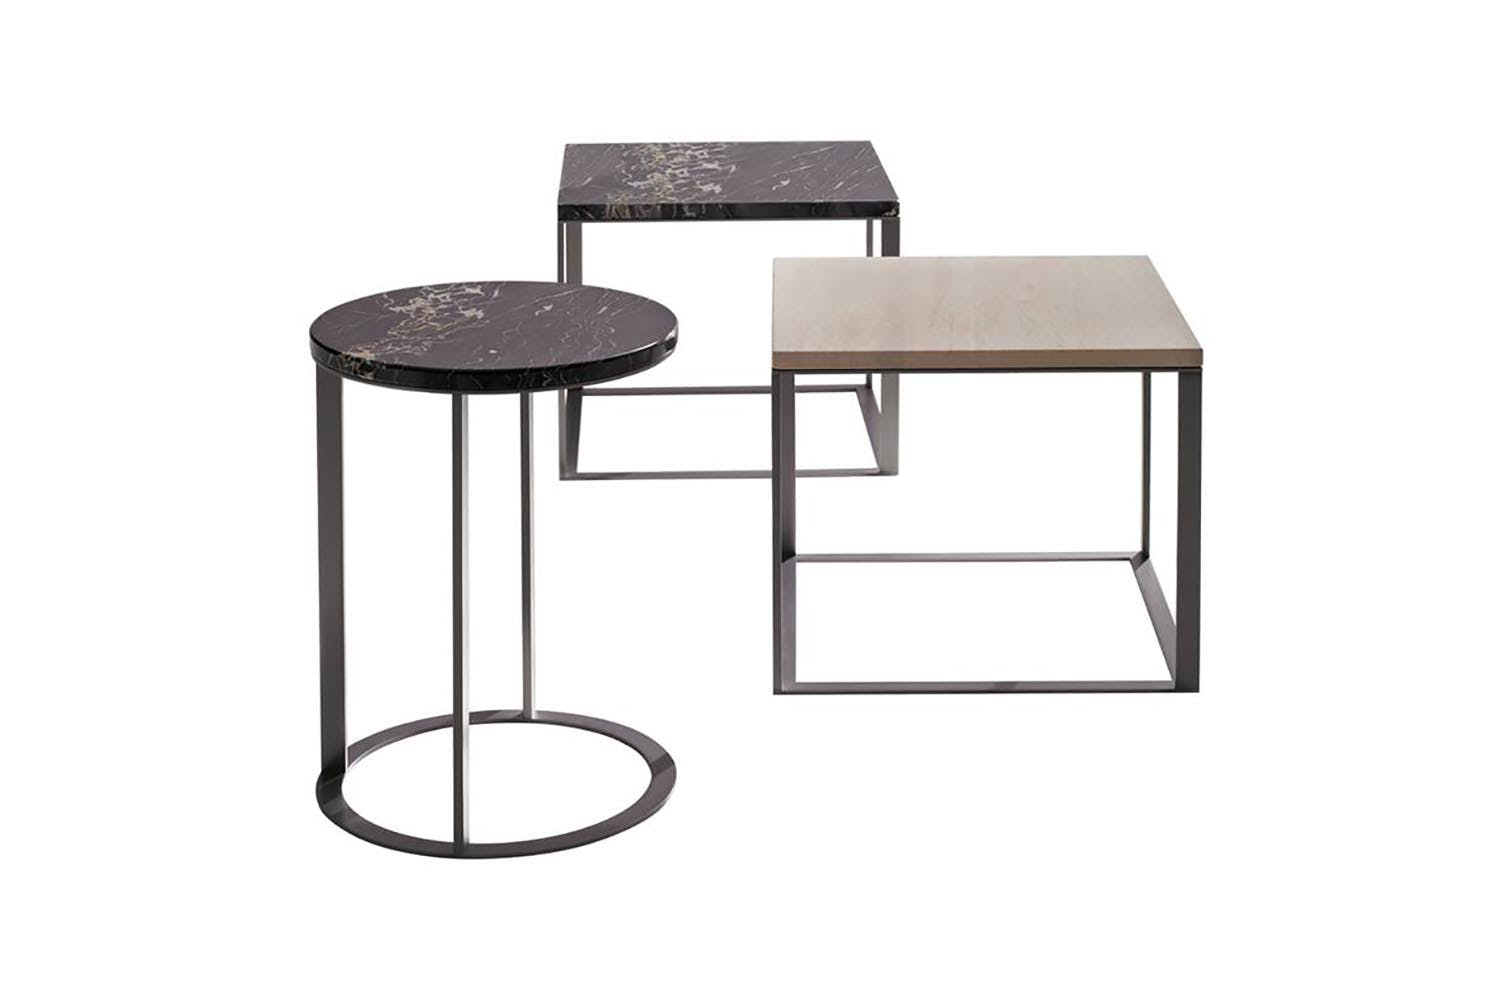 Lithos side coffee table by antonio citterio for maxalto for Coffee tables brisbane qld